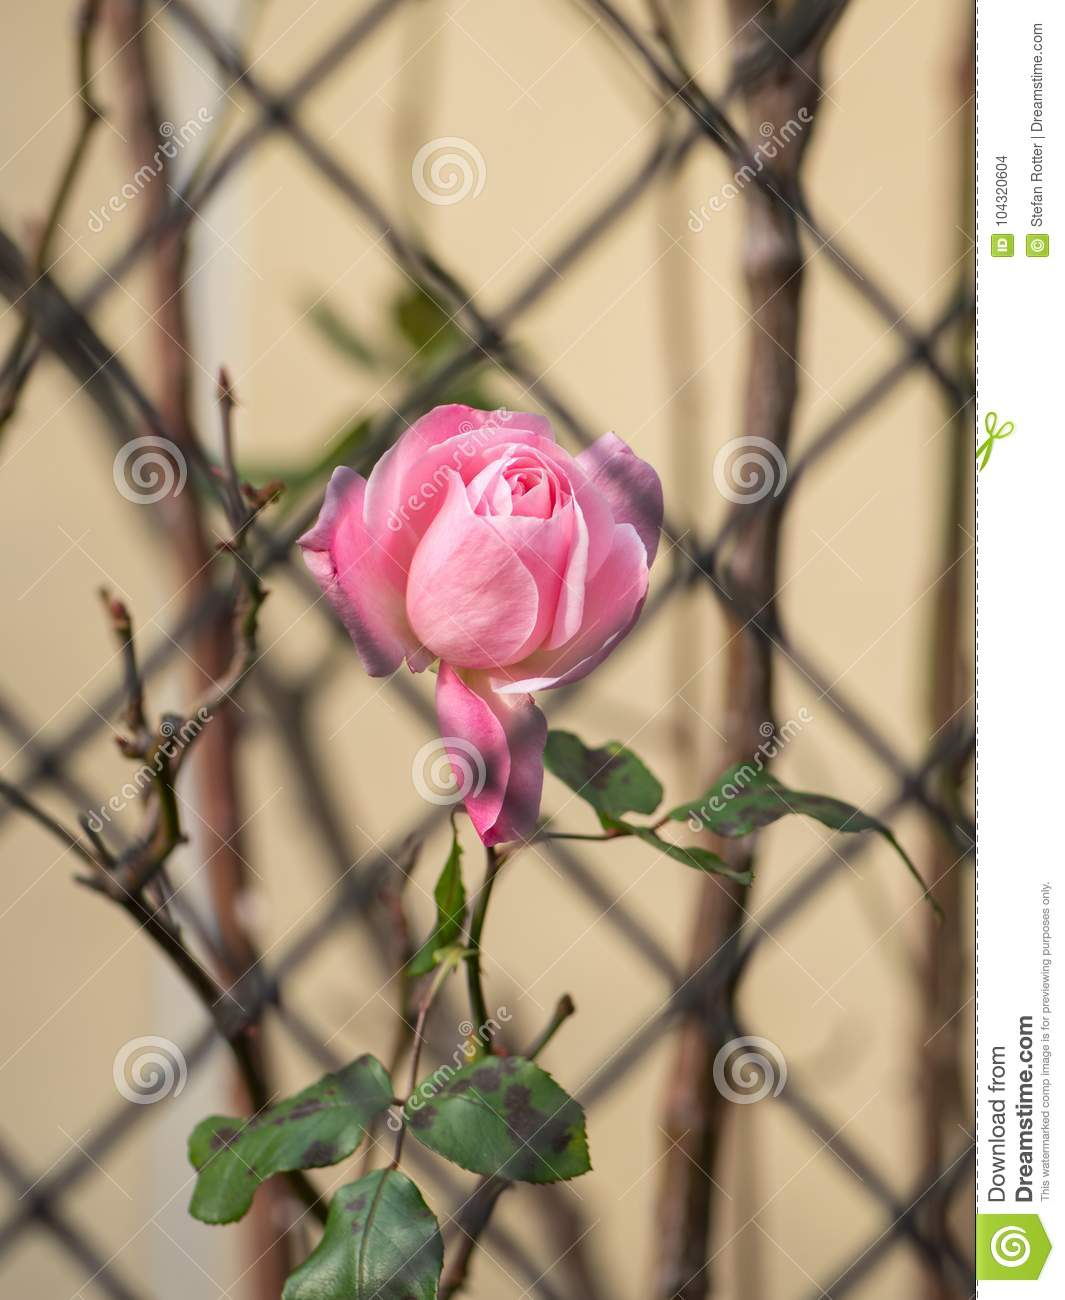 A pink rose behind an iron fence